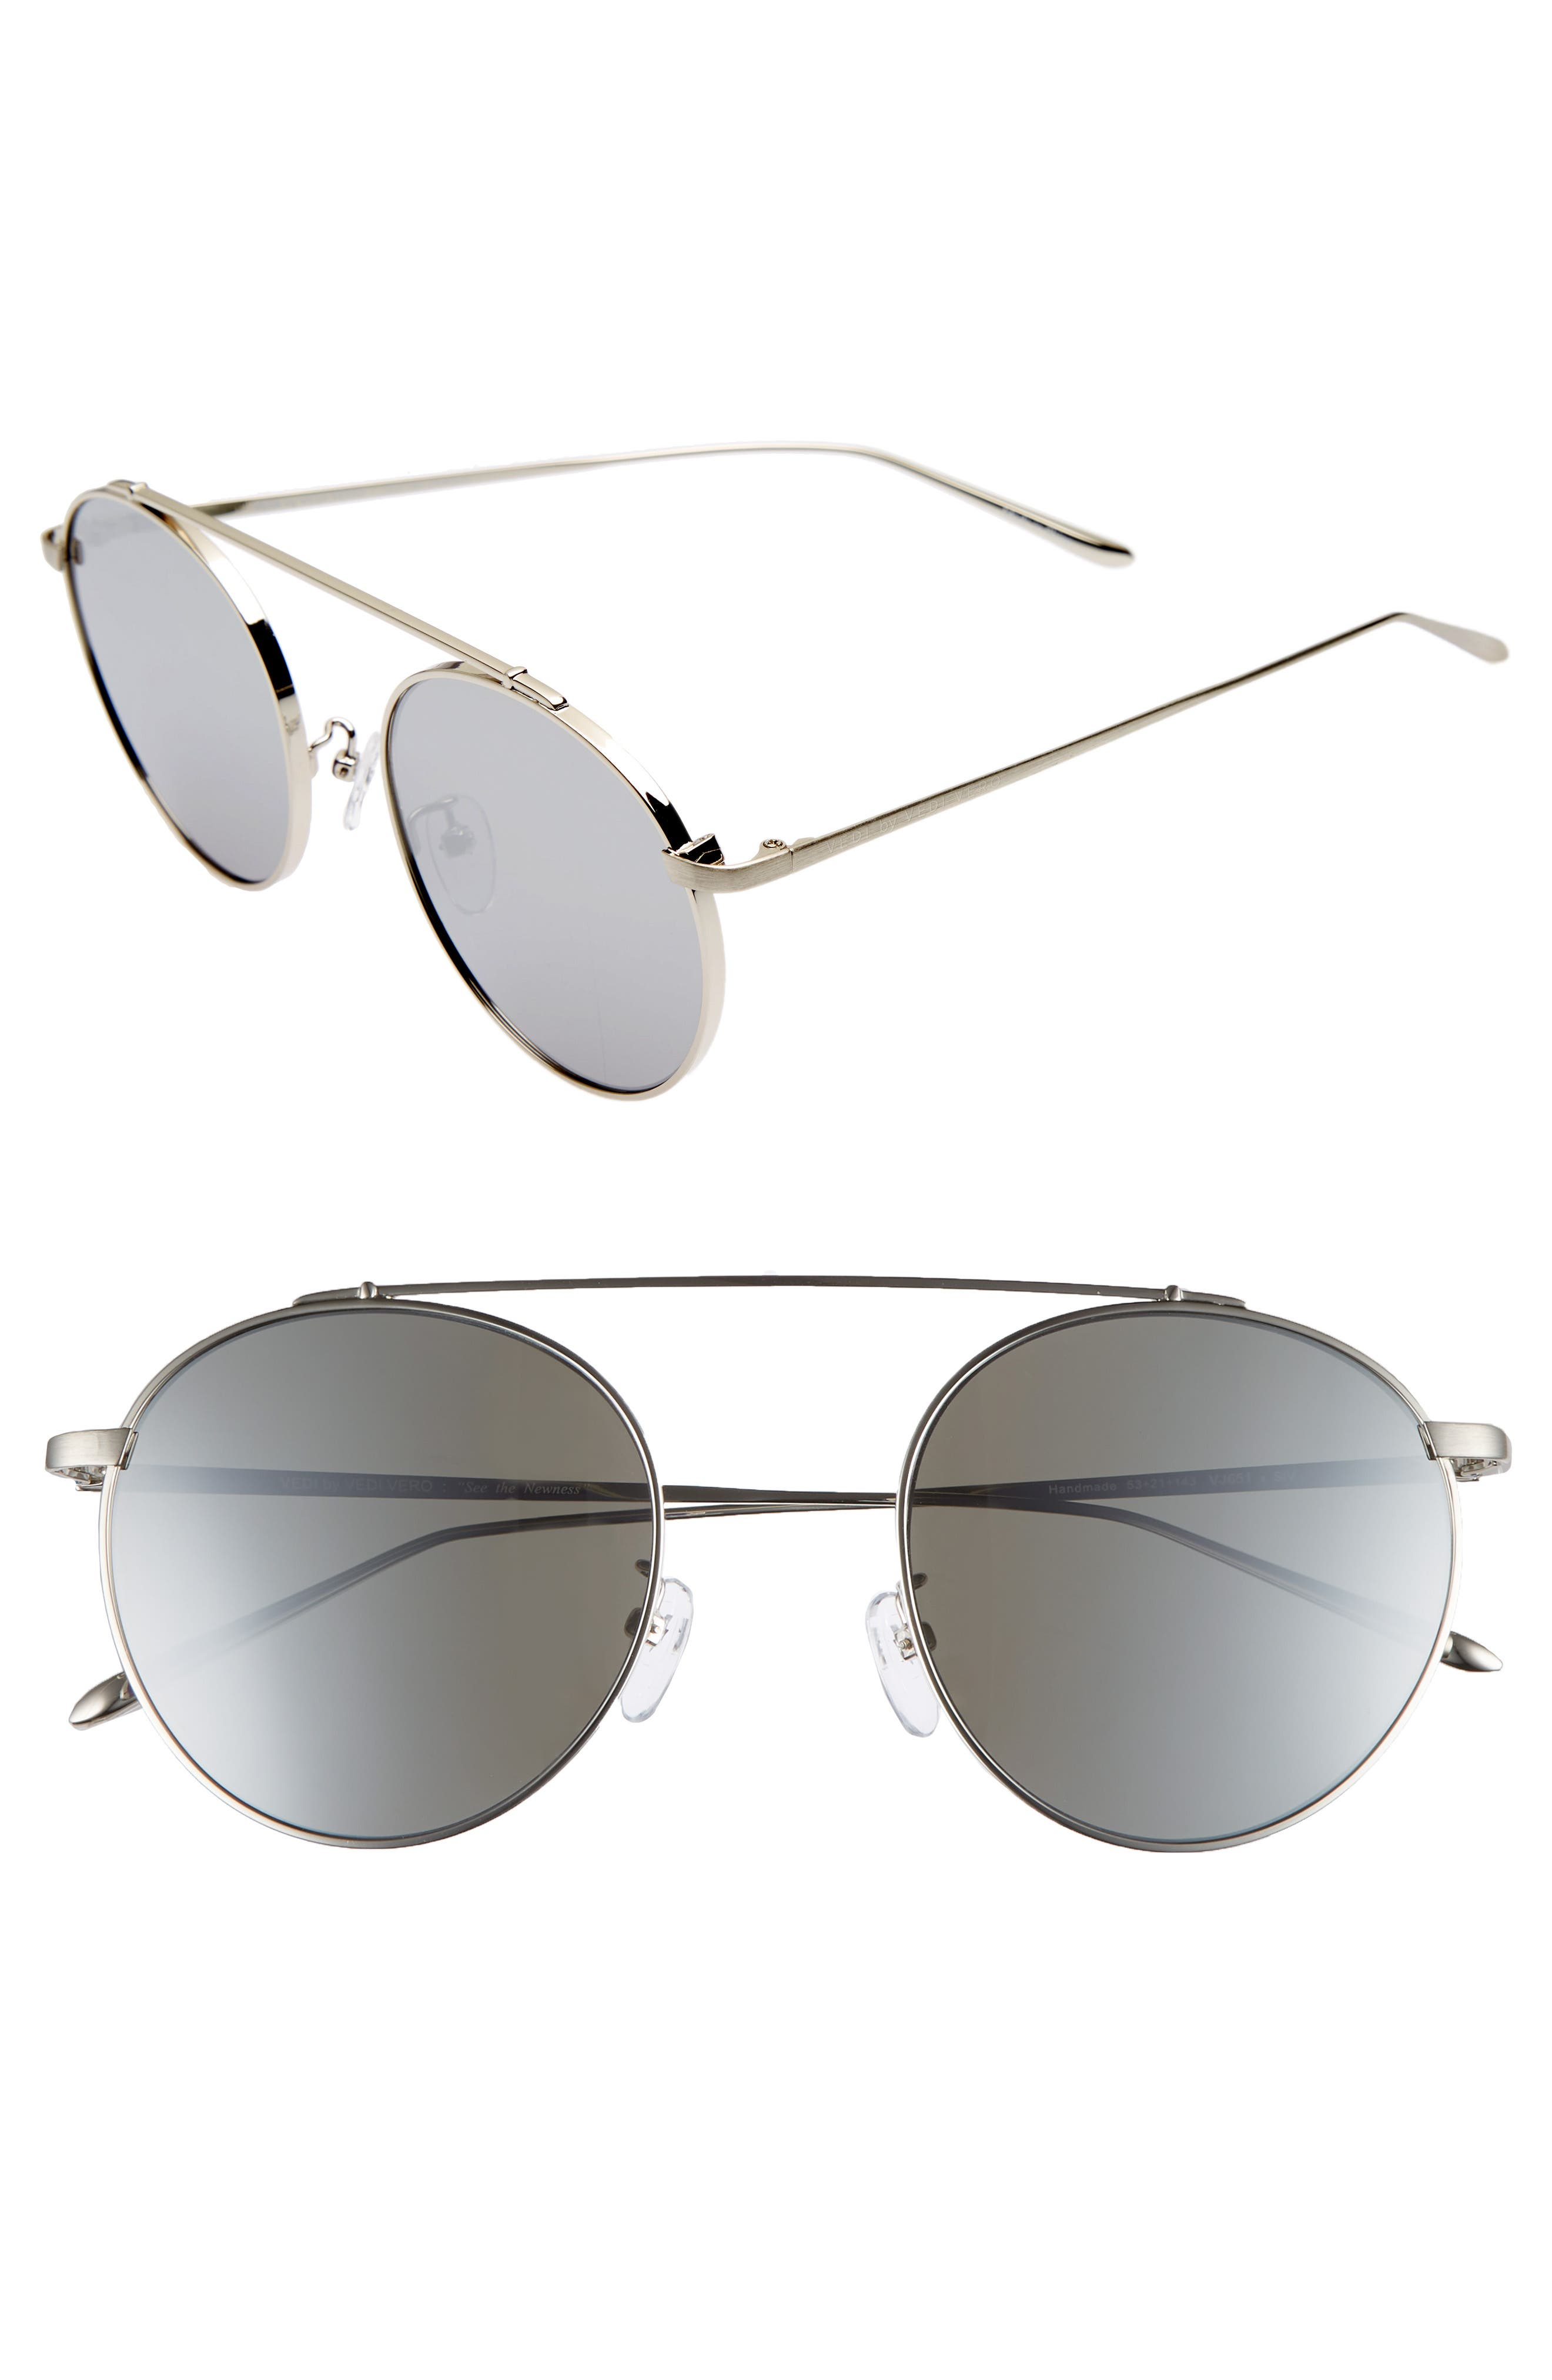 53mm Round Sunglasses,                         Main,                         color, ROSE GOLD/PINK MIRROR